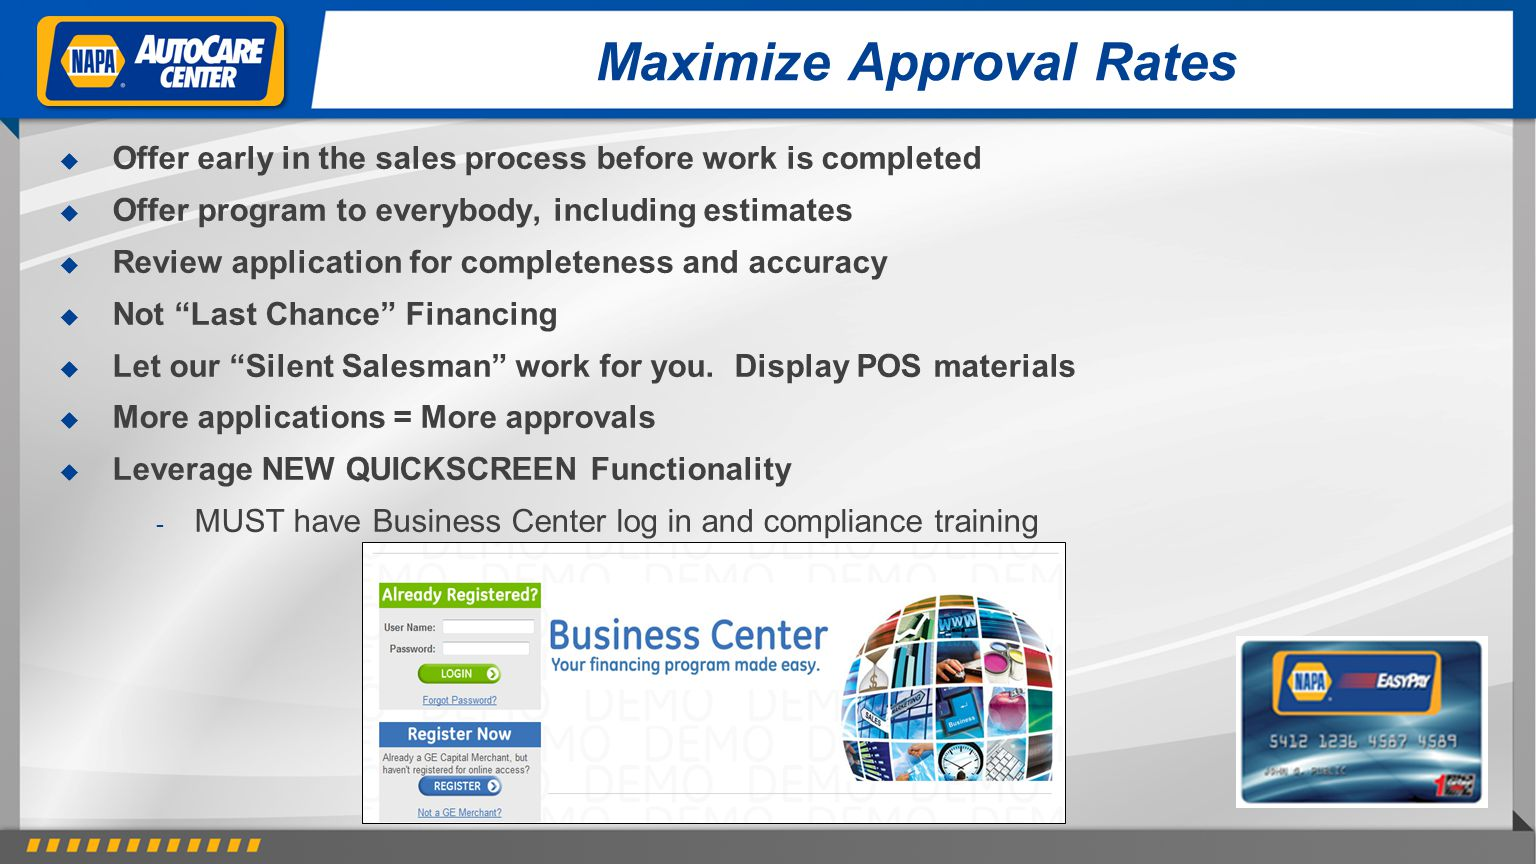 Maximize Approval Rates